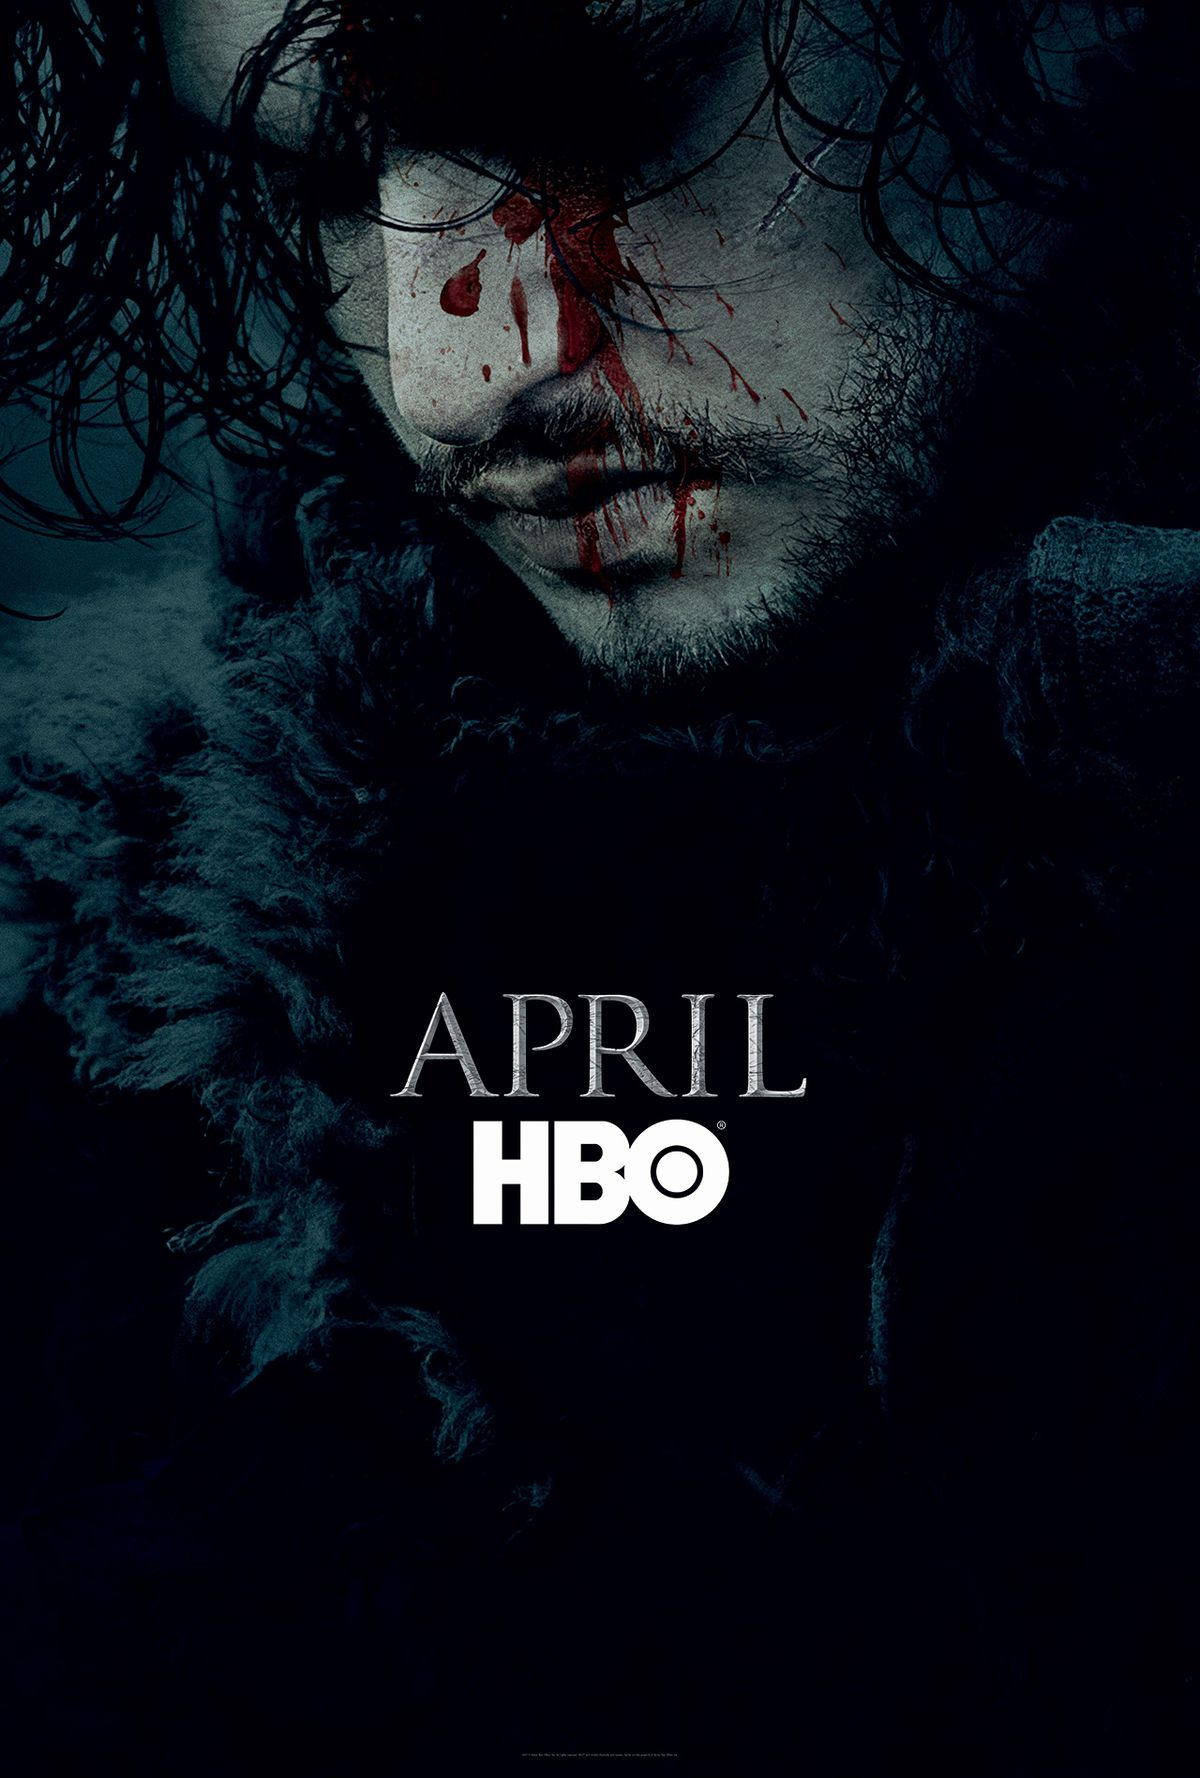 Game of Thrones season 6 poster 1280